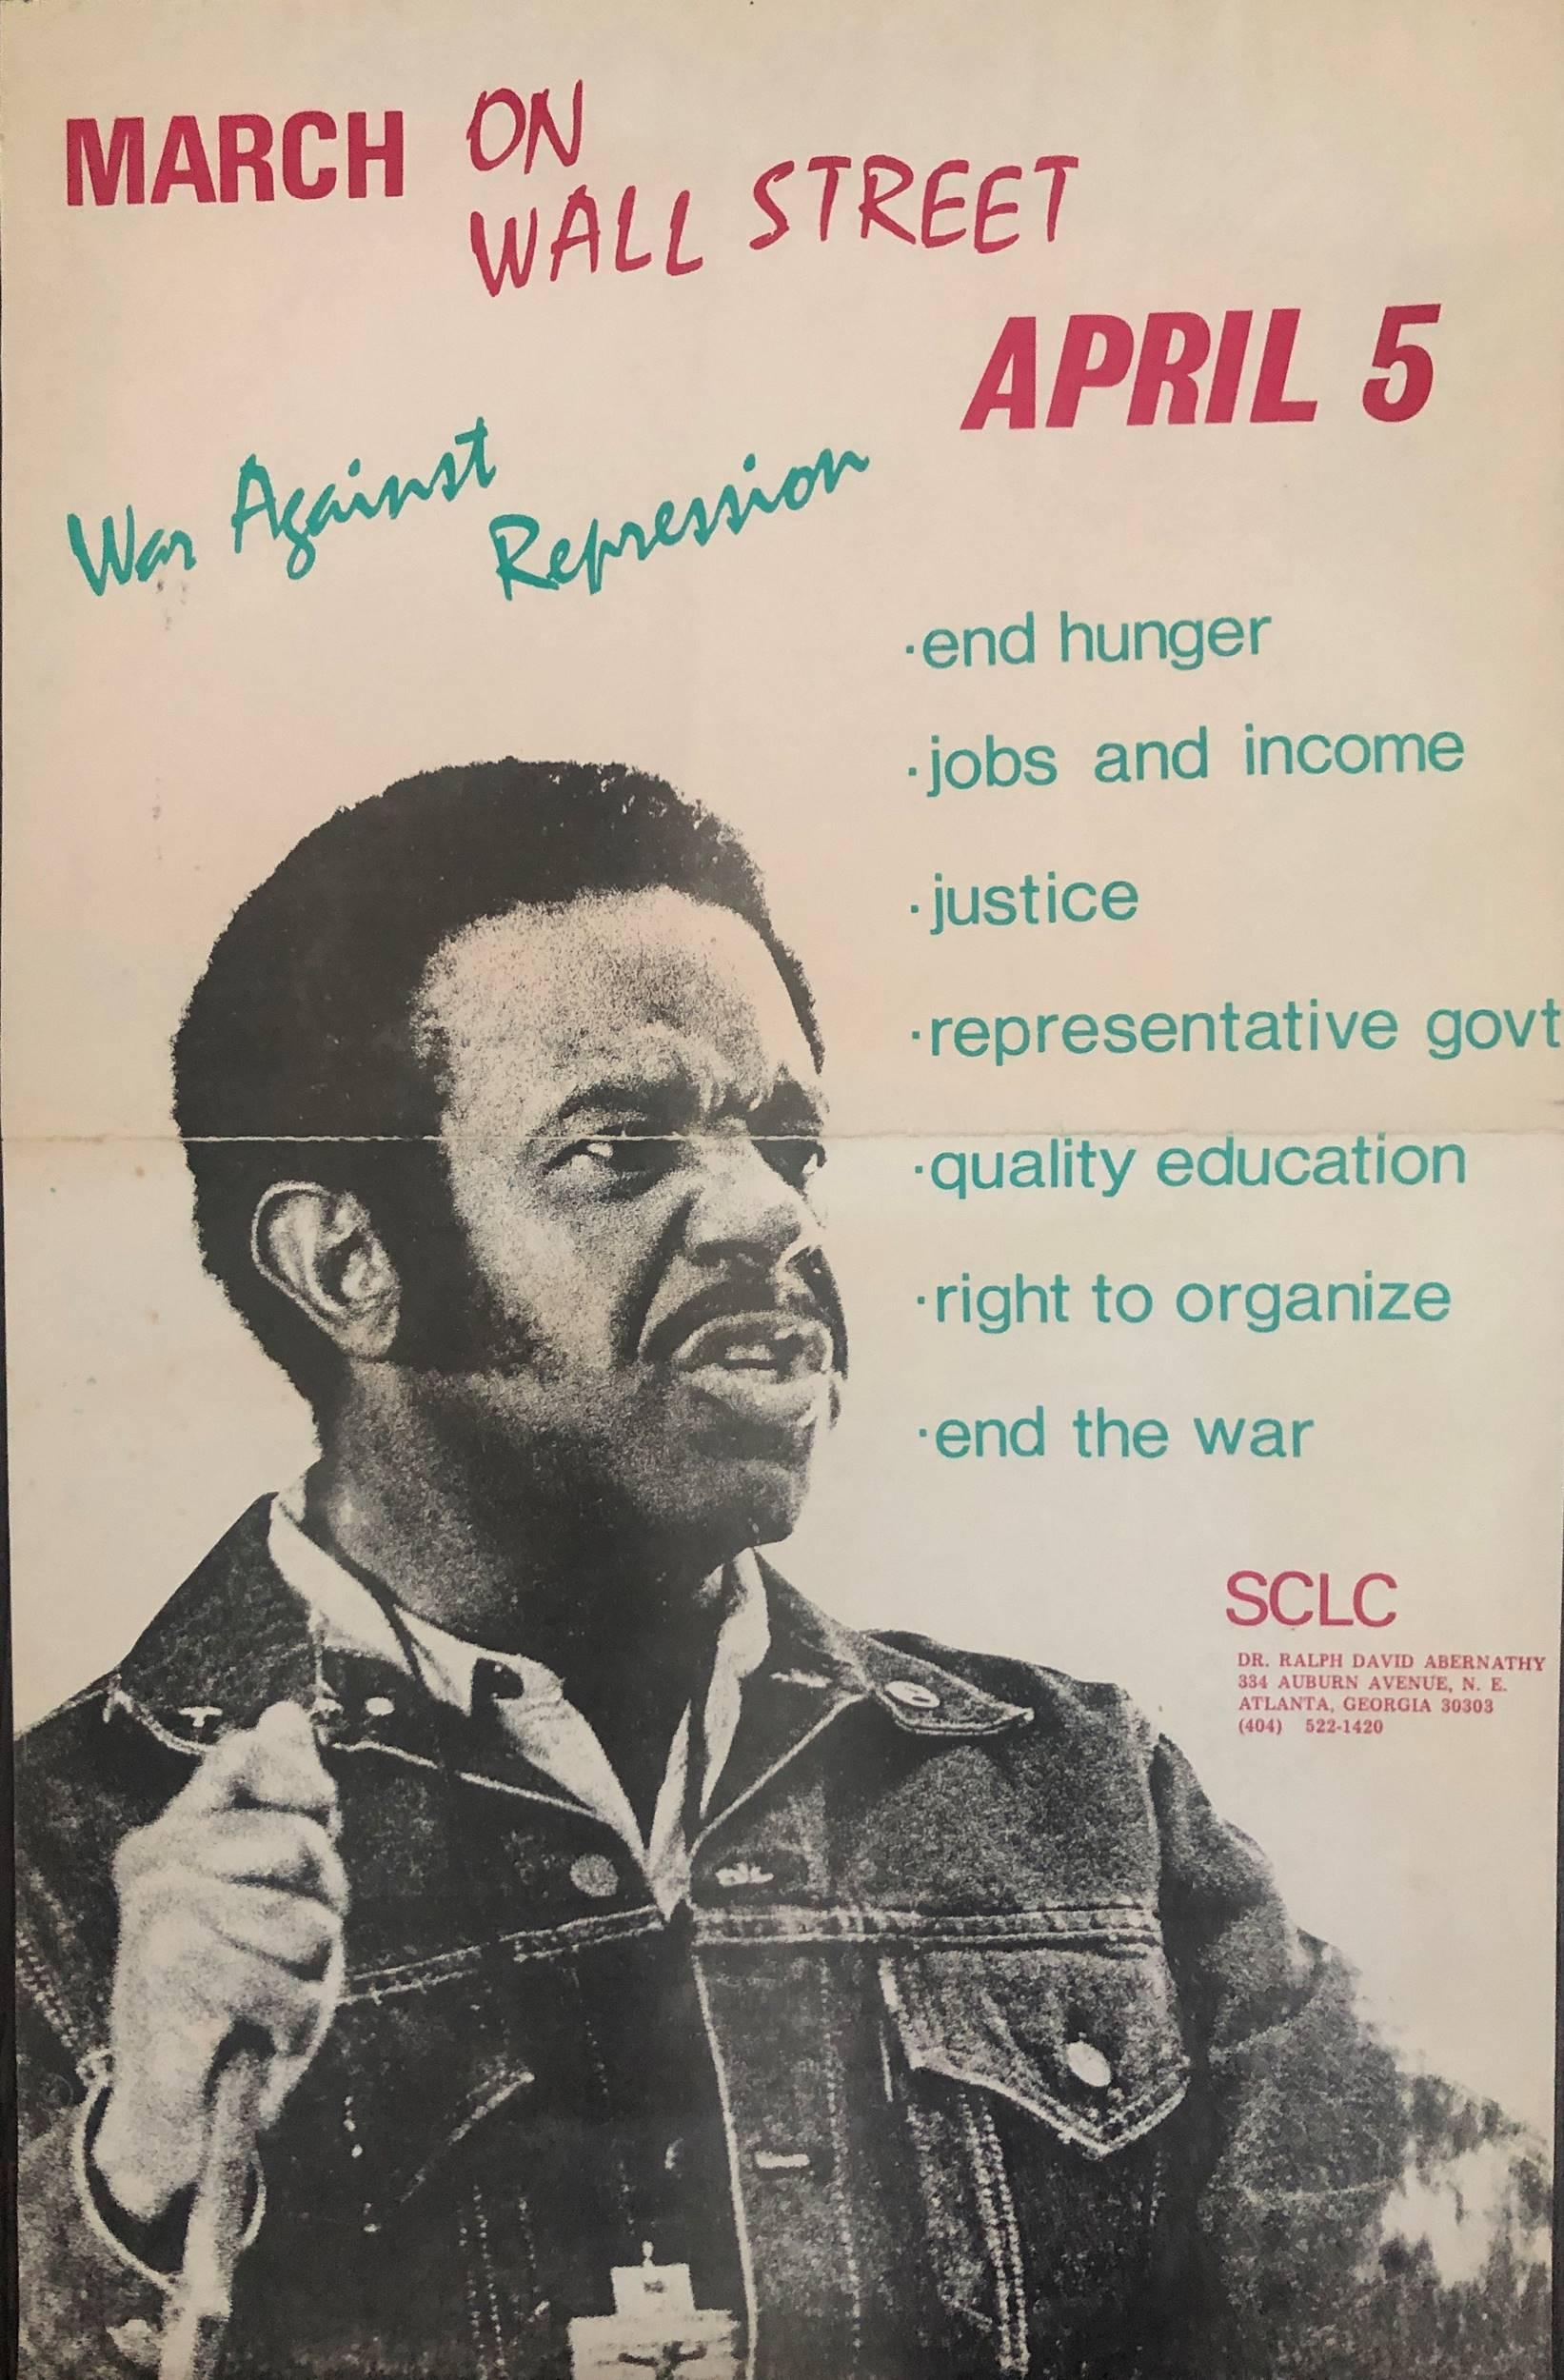 Dr. Abernathy Civil Rights March 1971 On Wall Street Poster Rare